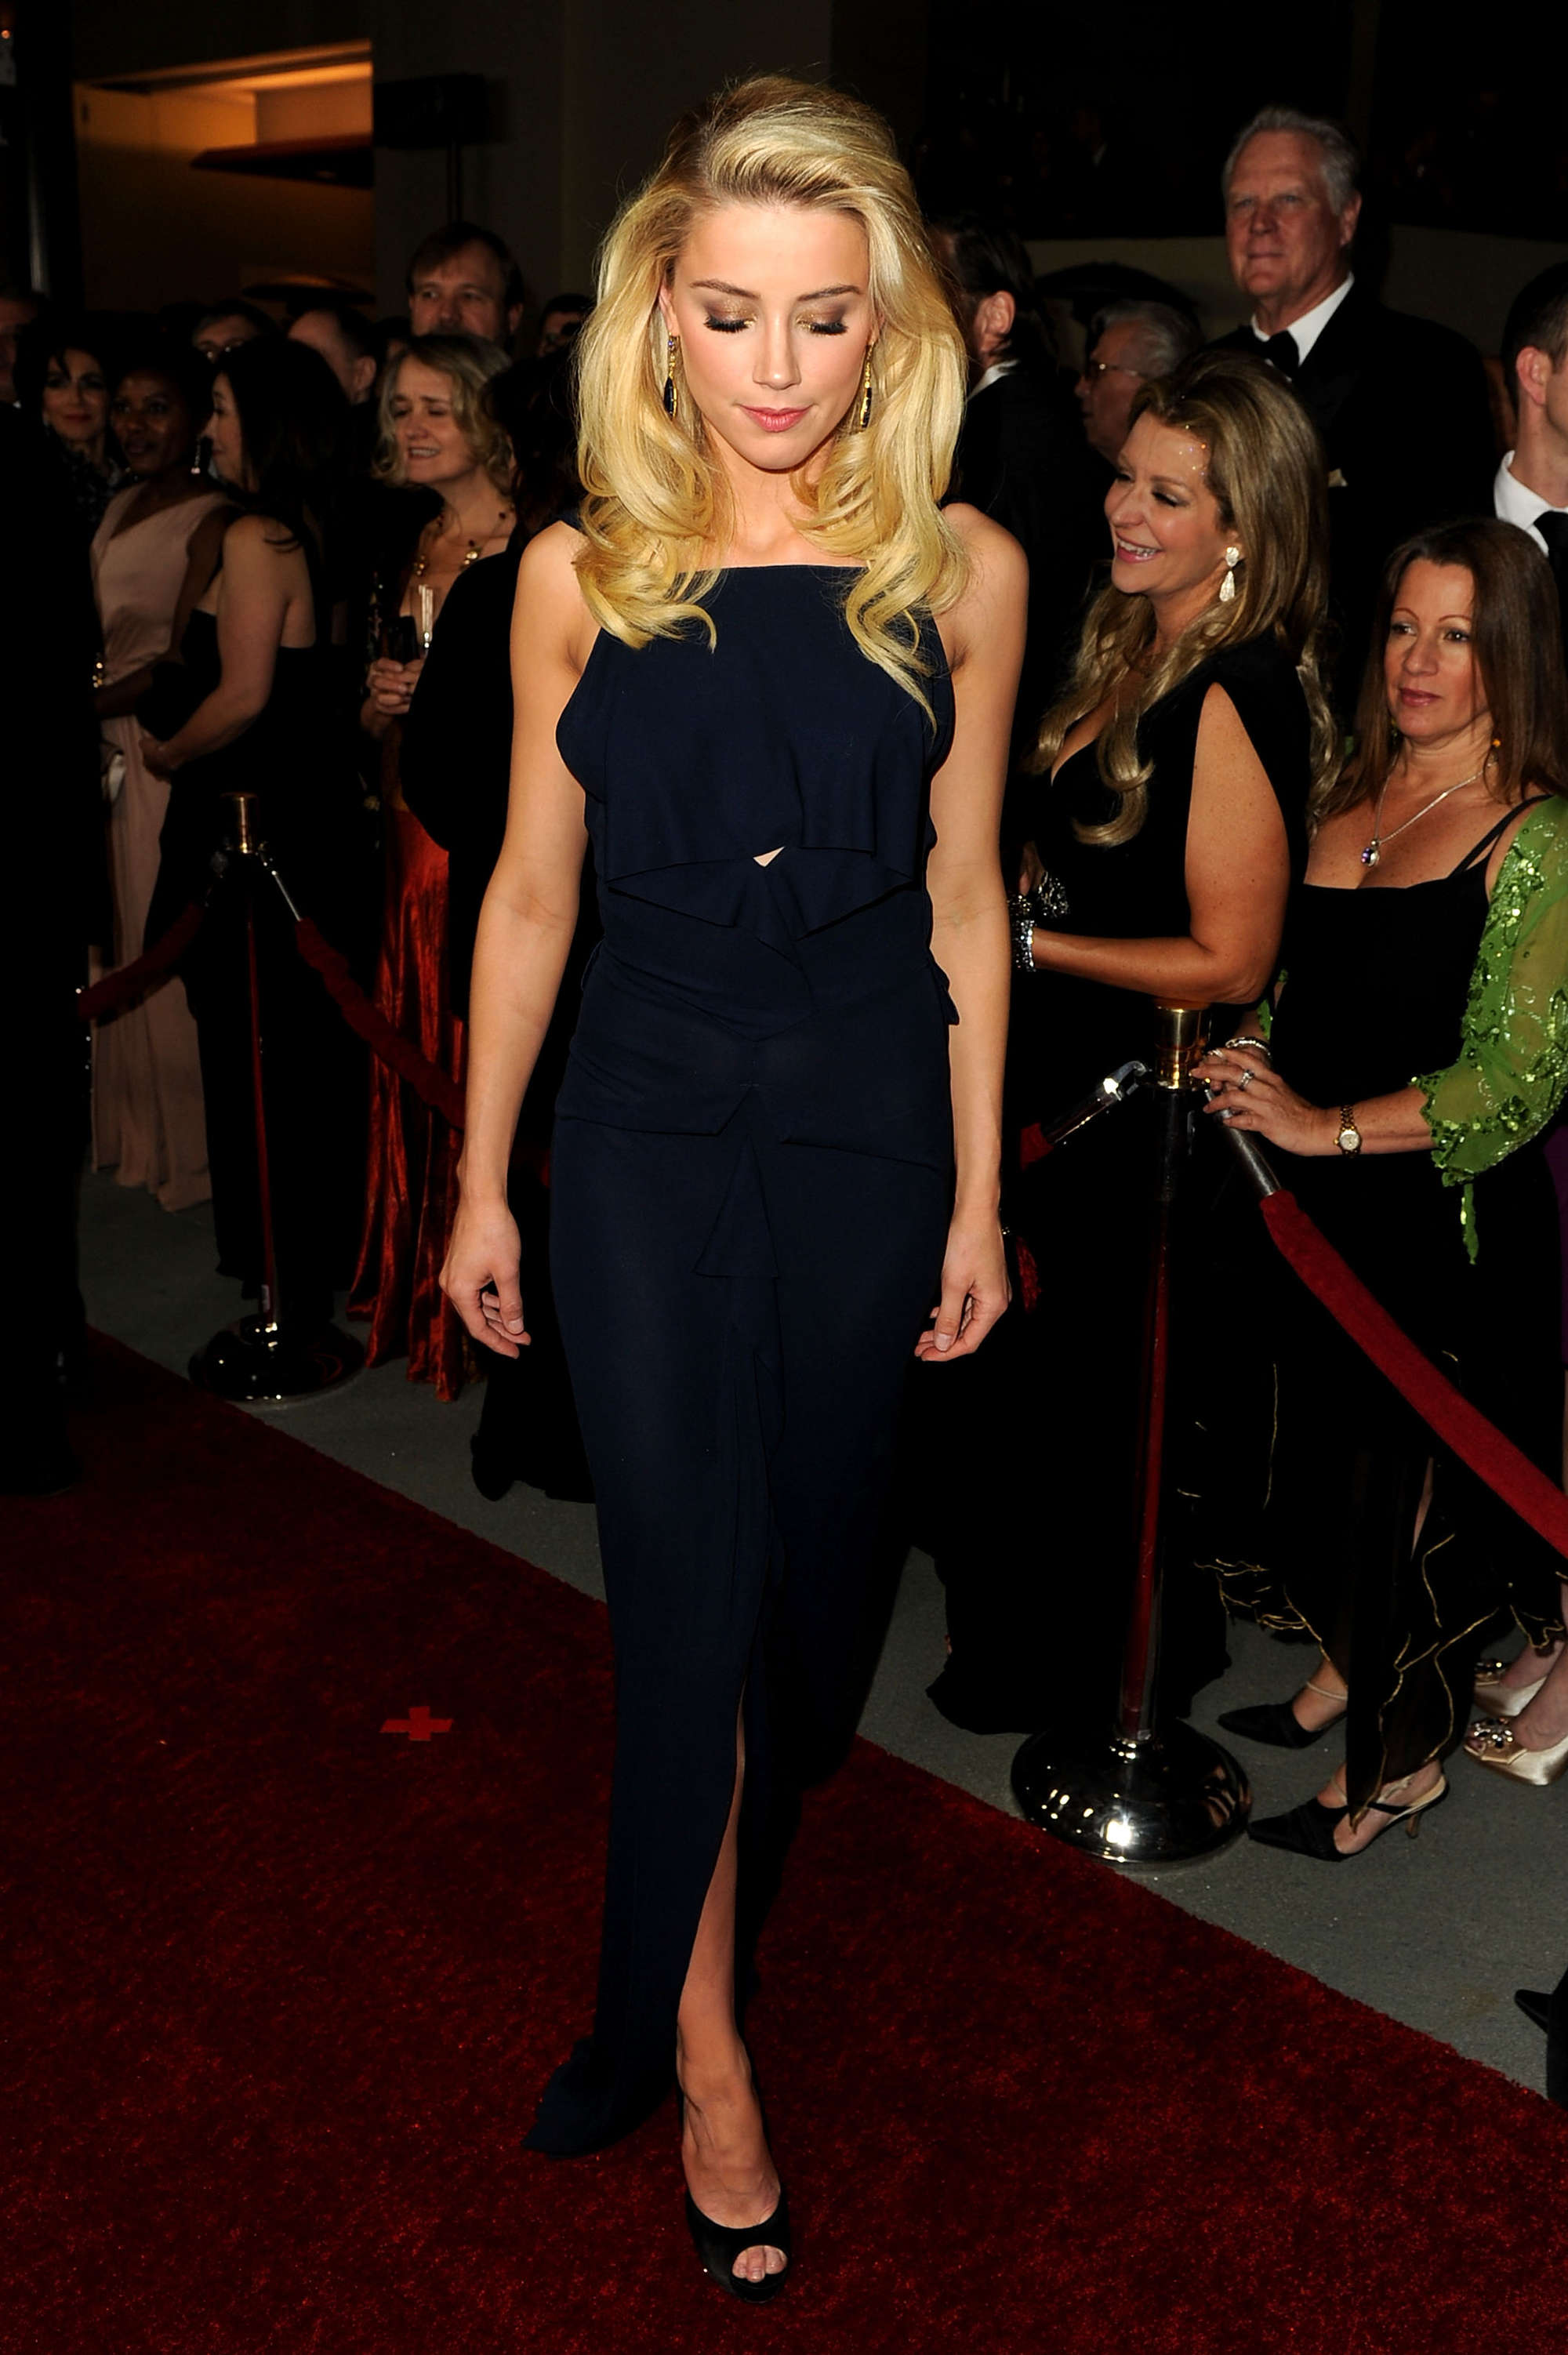 Black dress hollywood - Amber Heard Black Dress At Directors Guild Of America Awards In Hollywood 02 Full Size